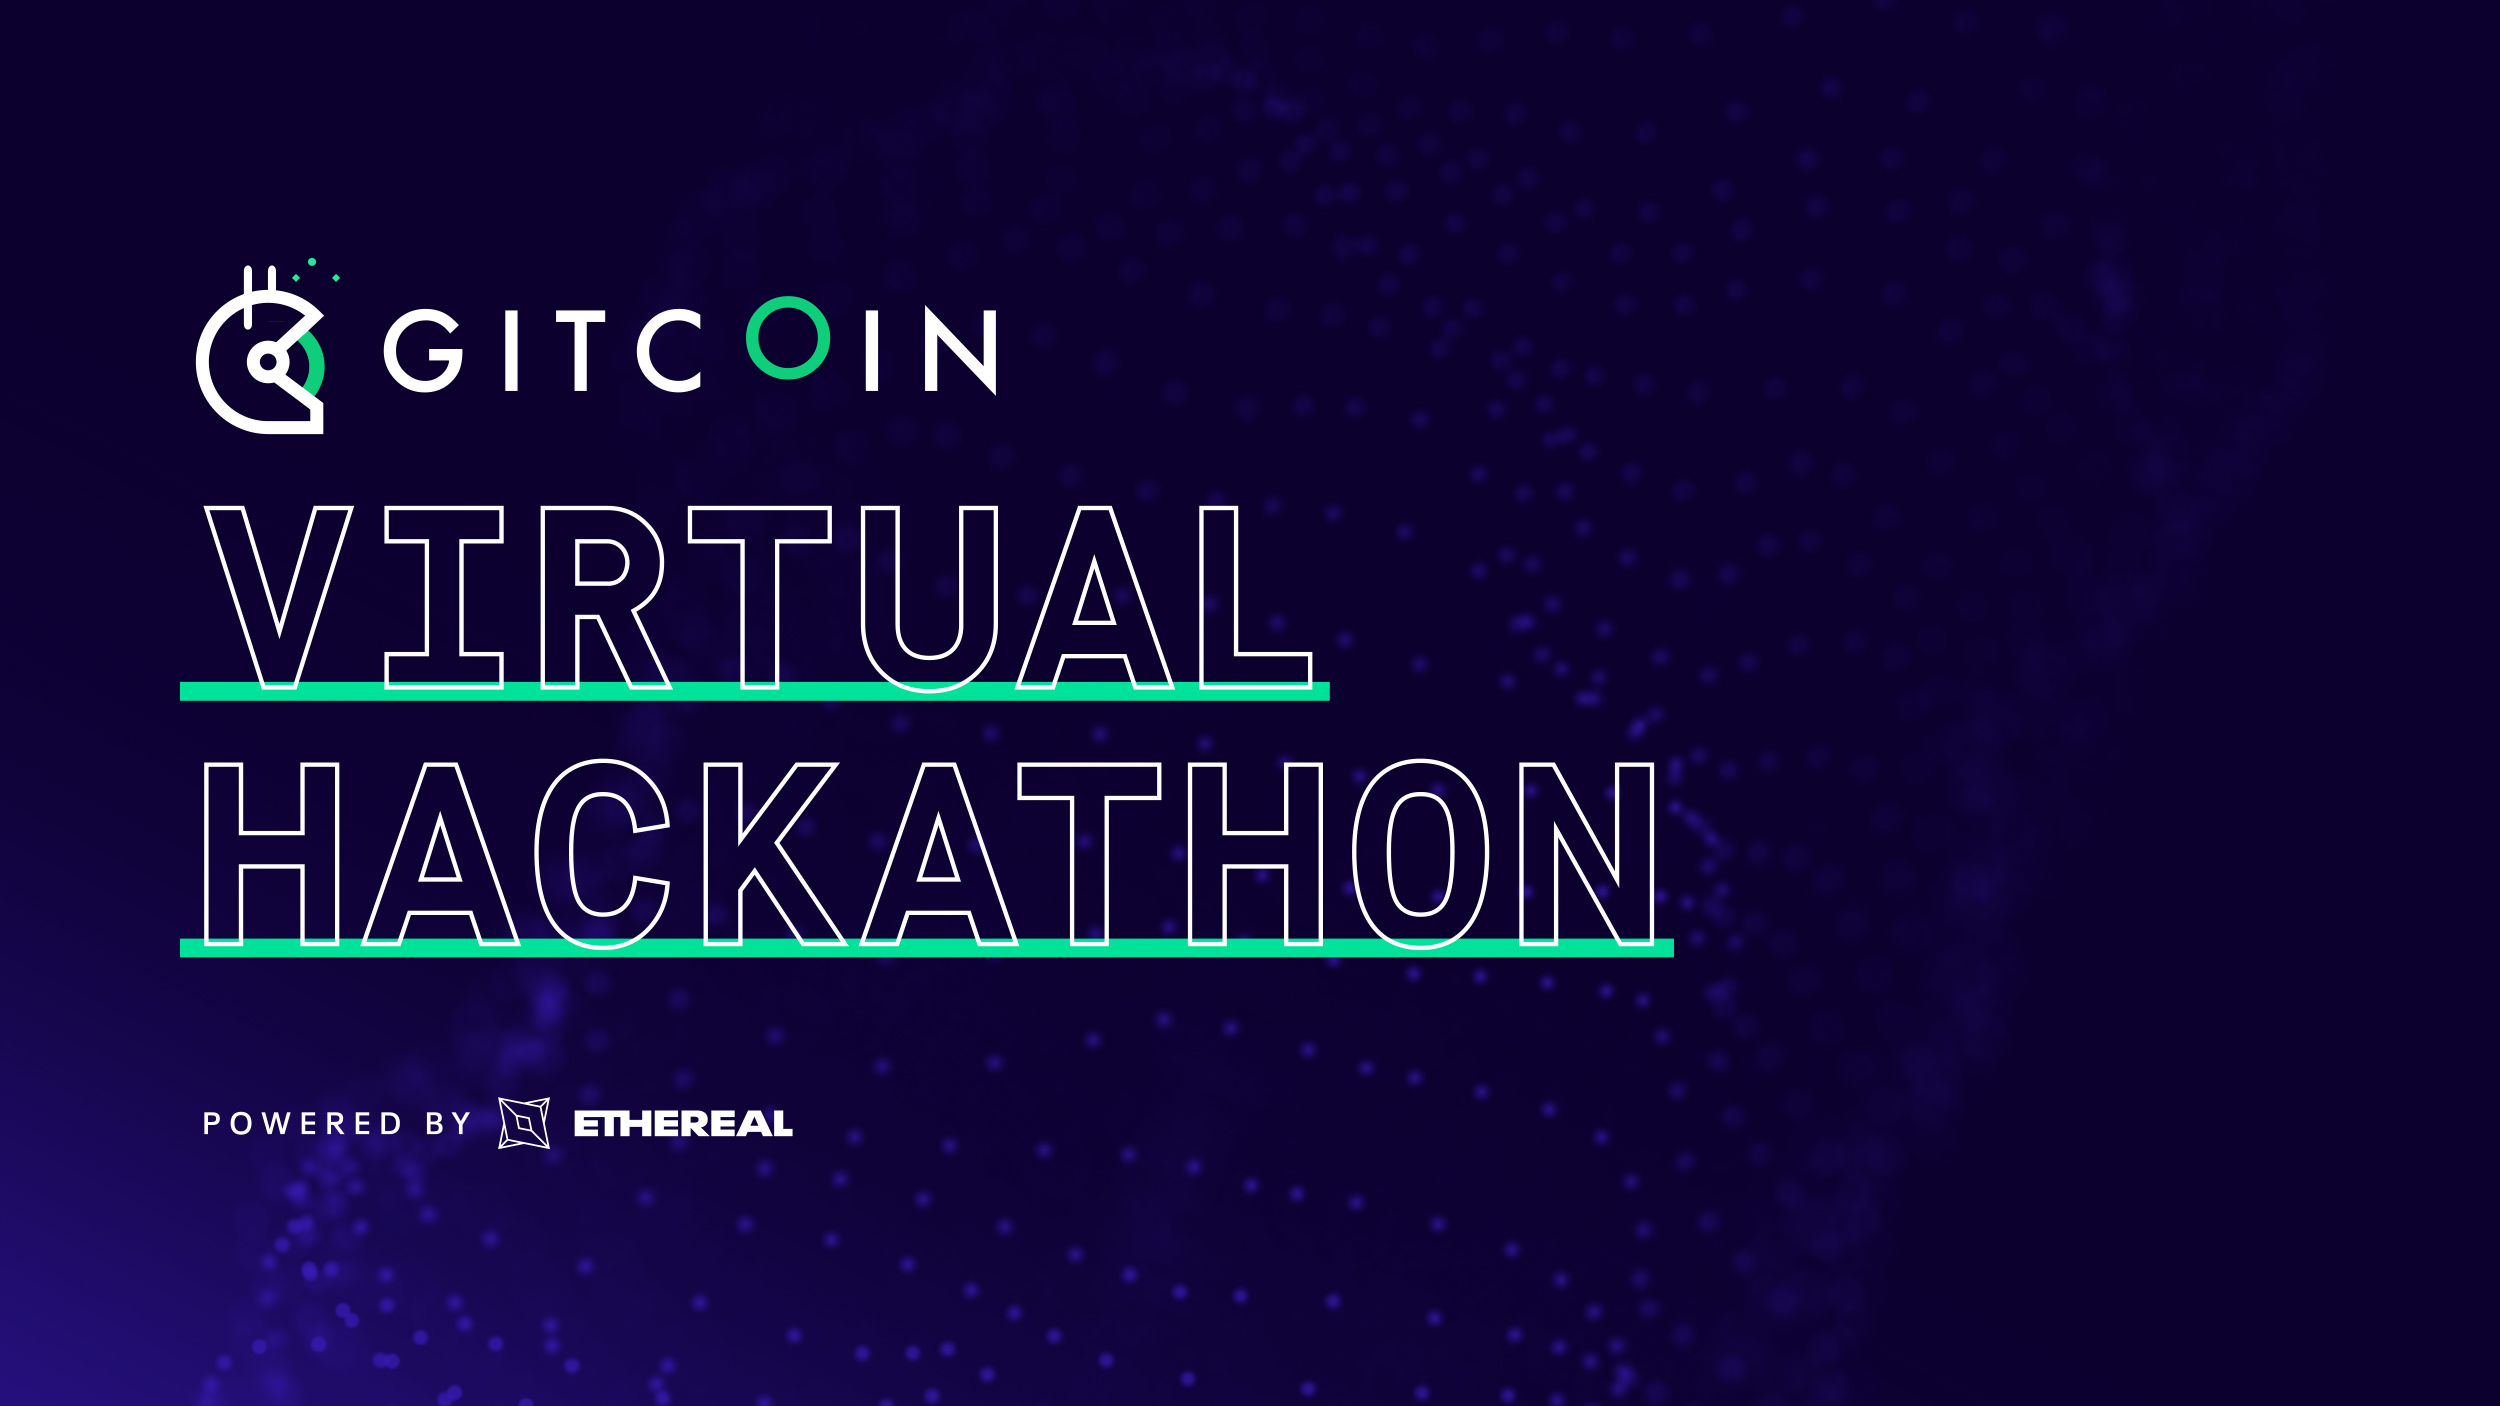 Gitcoin Virtual Hackathon - Powered by Ethereal